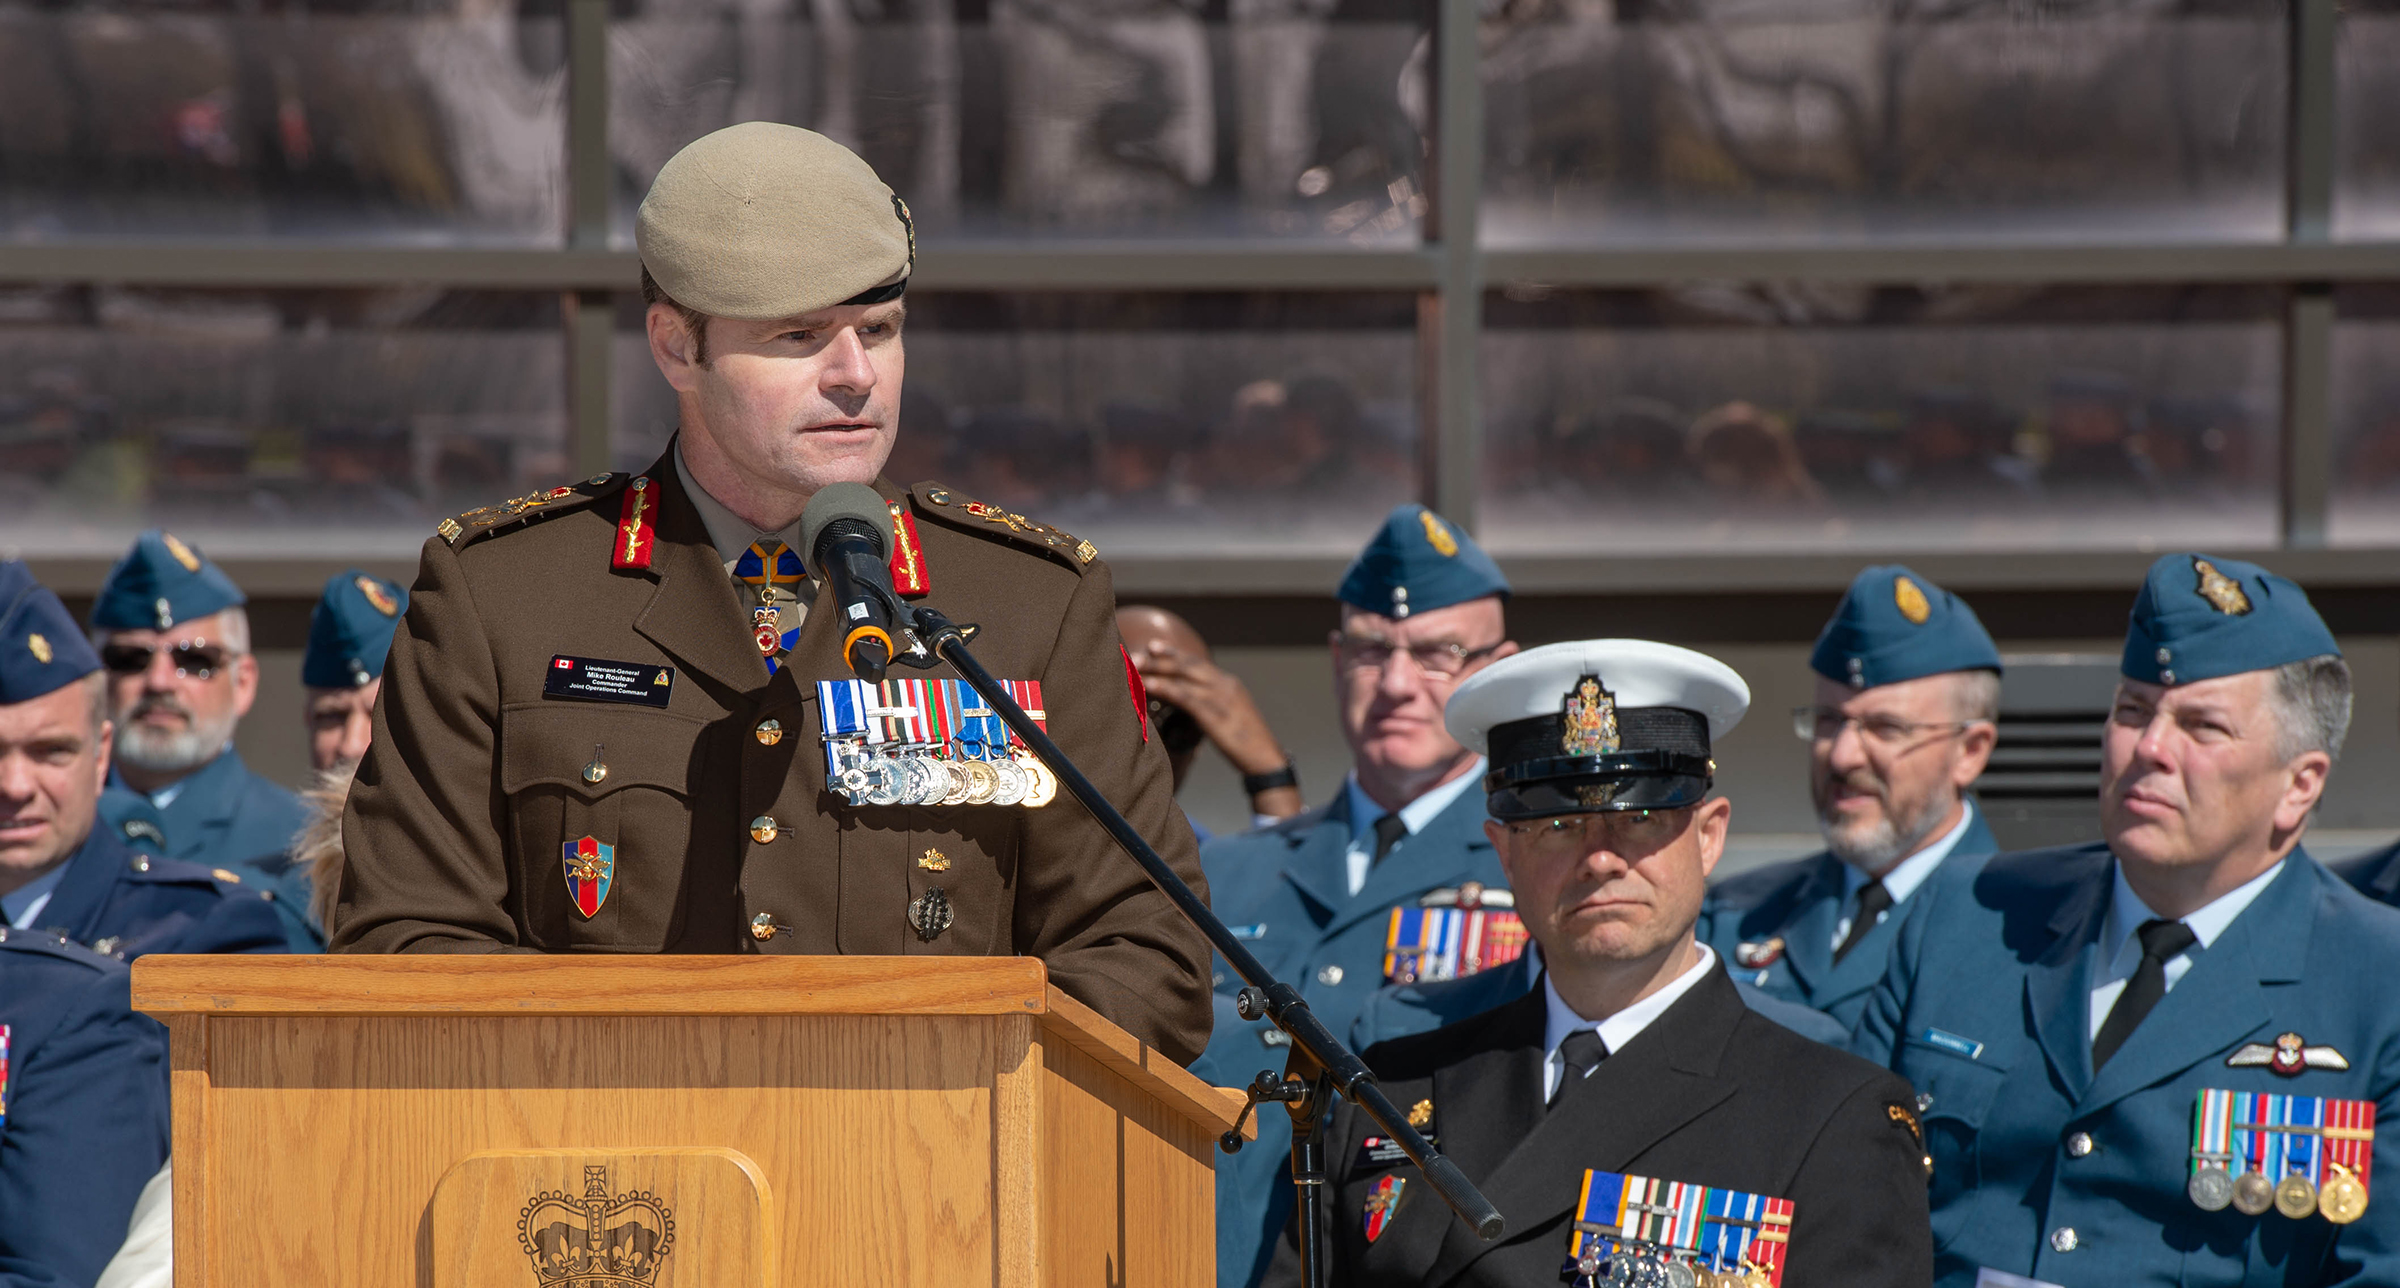 Lieutenant-General Mike Rouleau, commander of Canadian Joint Operations Command, addresses the parade and guests during the change of command ceremony for 1 Canadian Air Division, Canadian NORAD Region and the Joint Force Air Component held May 16, 2019, at 1 CAD headquarters in Winnipeg, Manitoba. PHOTO: Corporal Bryce Cooper, WG2019-0214-041